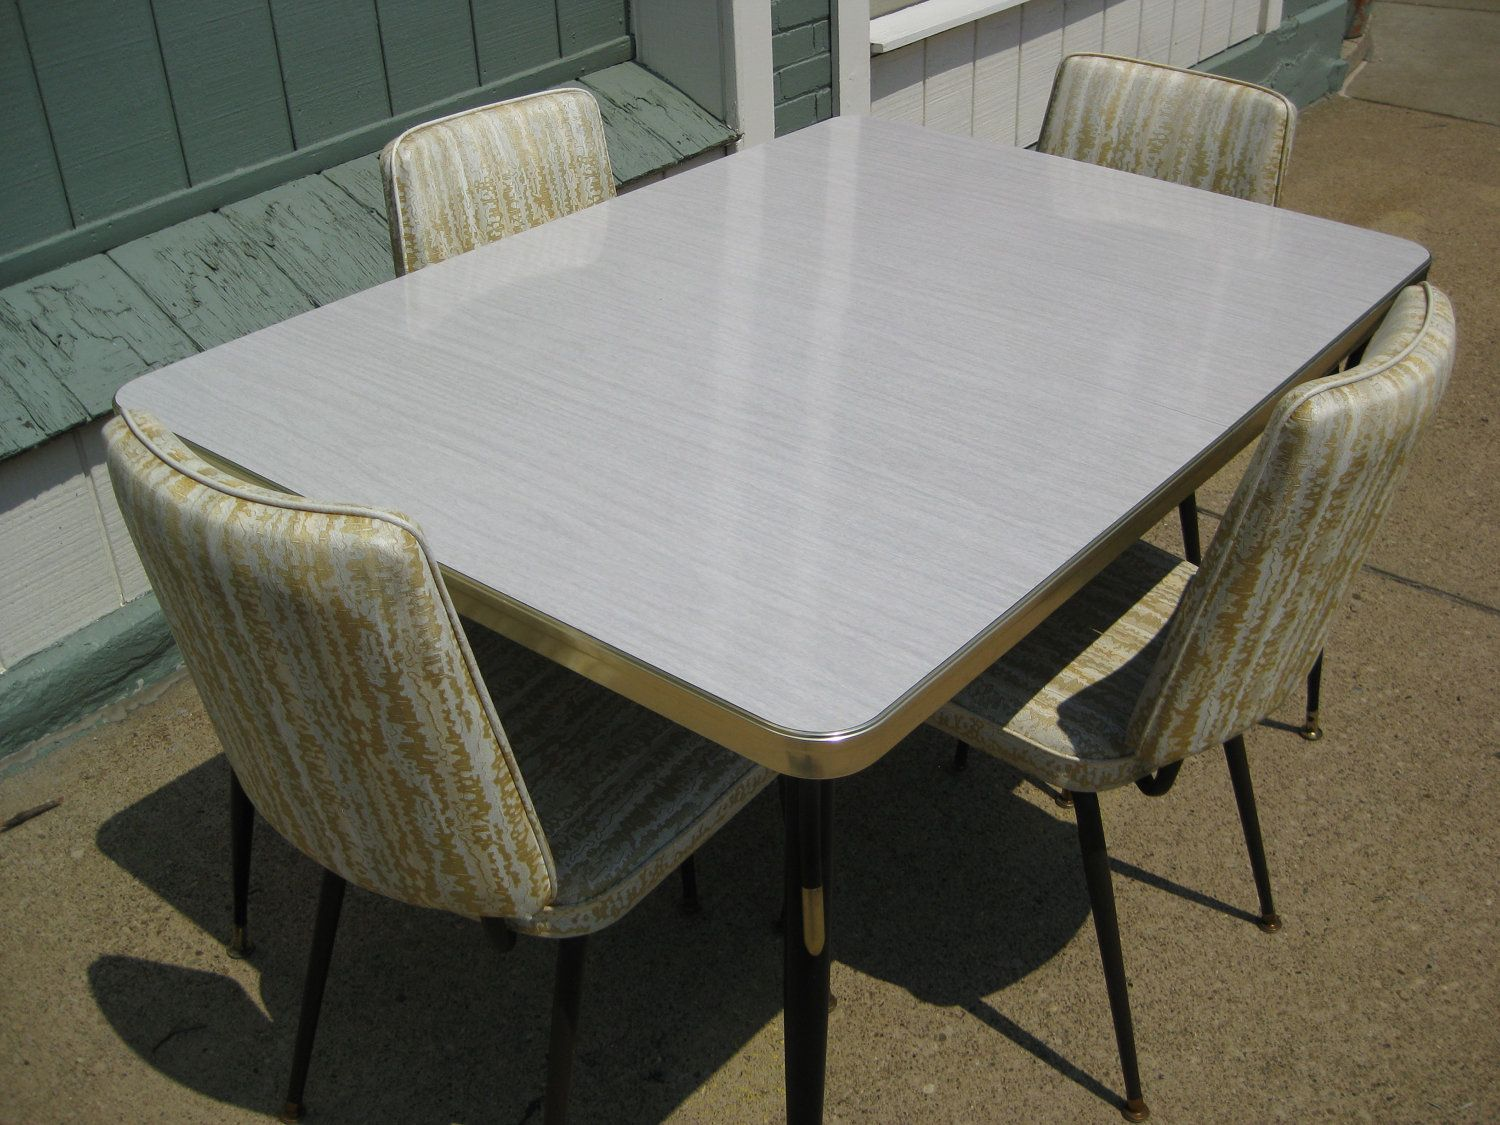 vintage metal kitchen tables and chairs | vintage 1950s formica